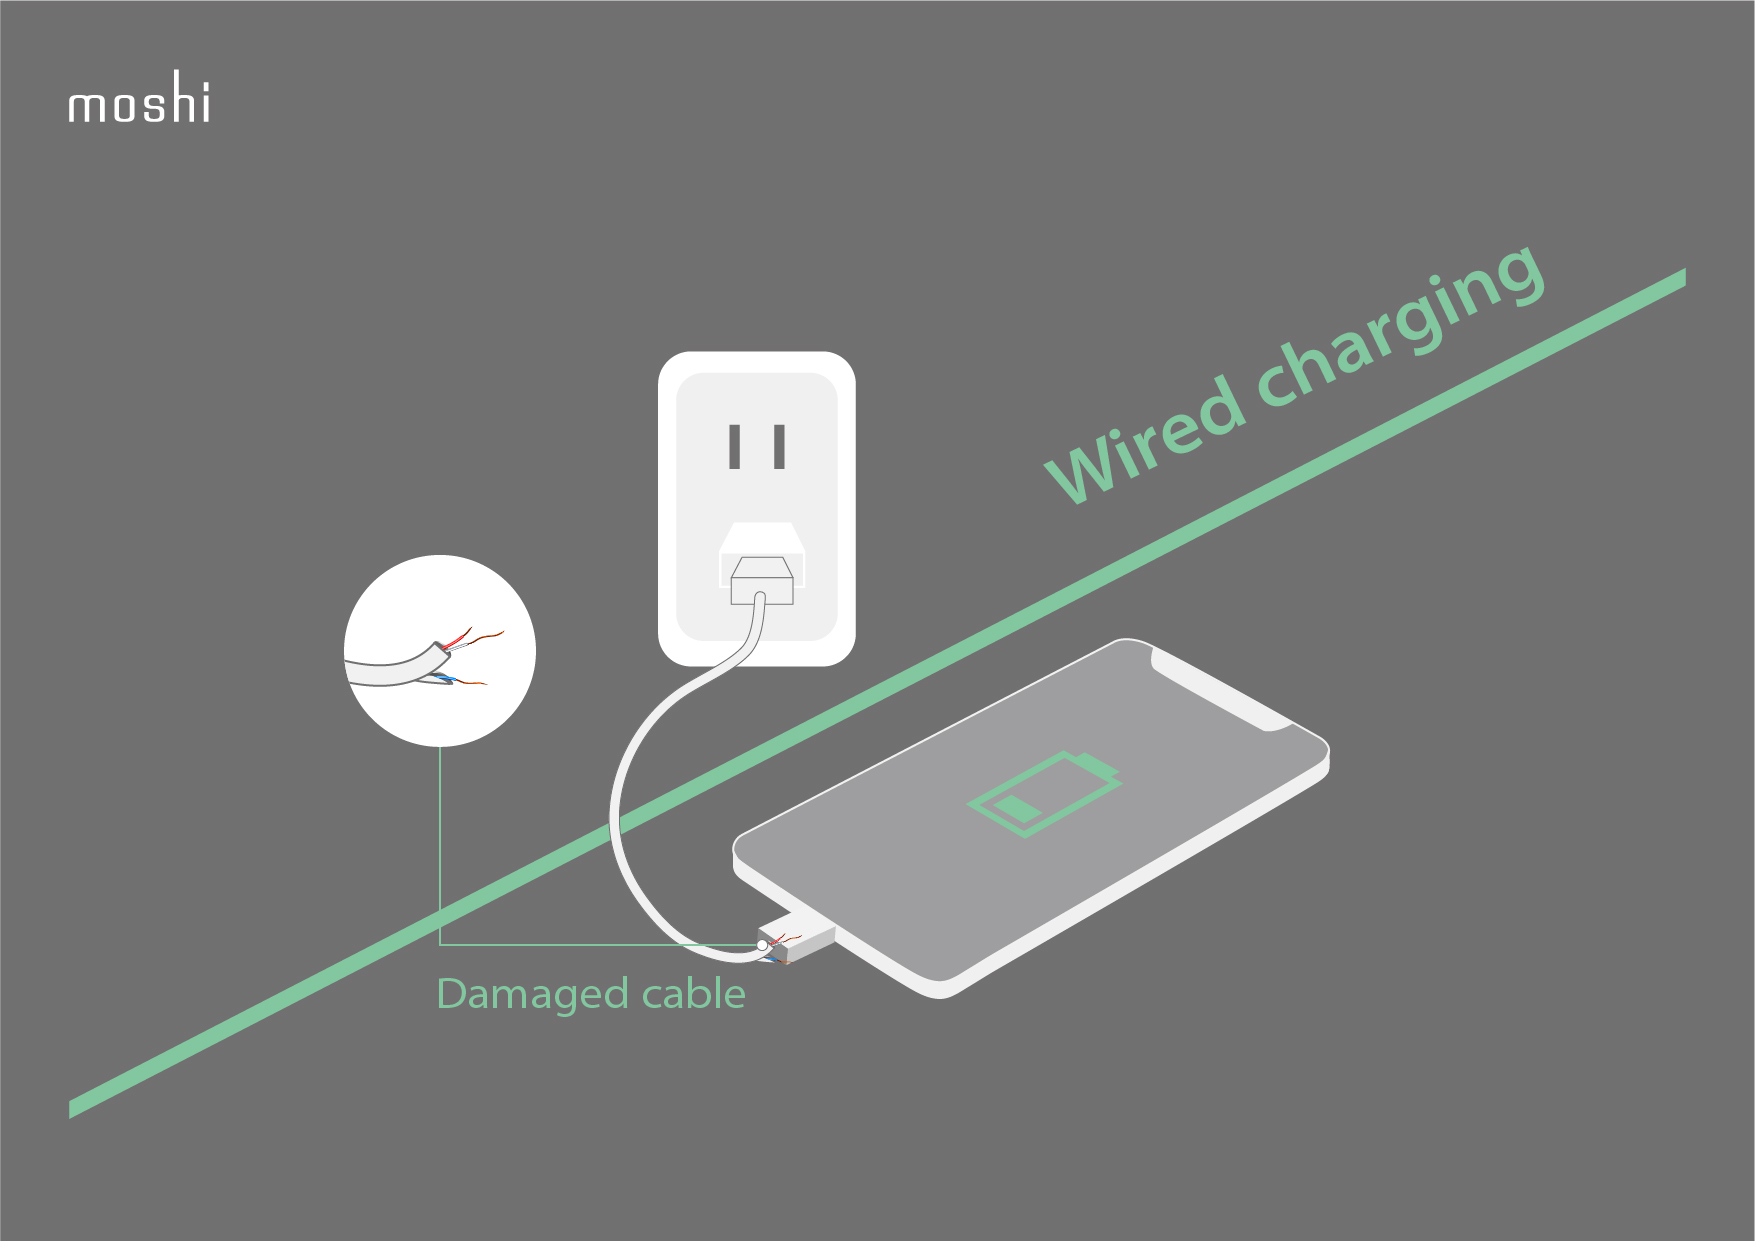 Illustration of a smartphone charging using a frayed cable